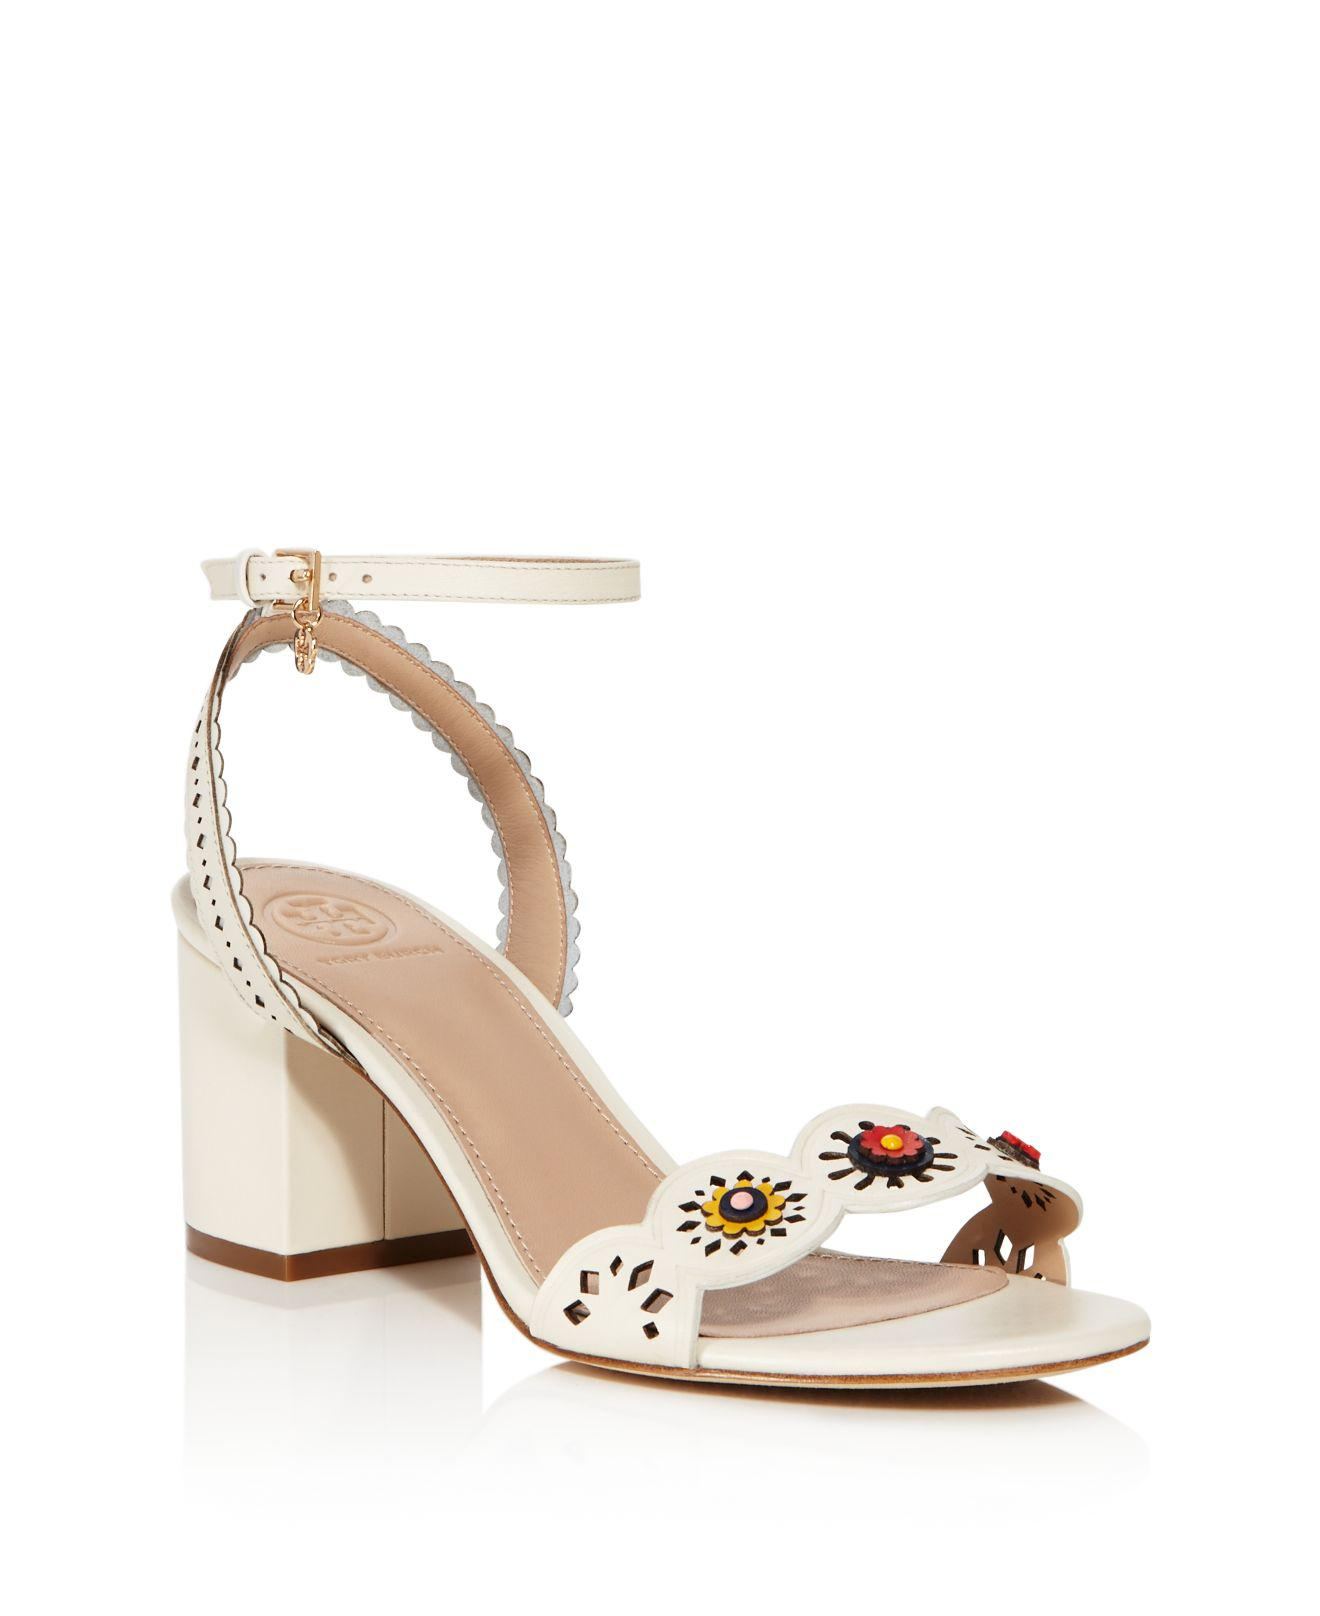 34fcbe544350 Tory Burch Marguerite Perforated Sandal in White - Lyst